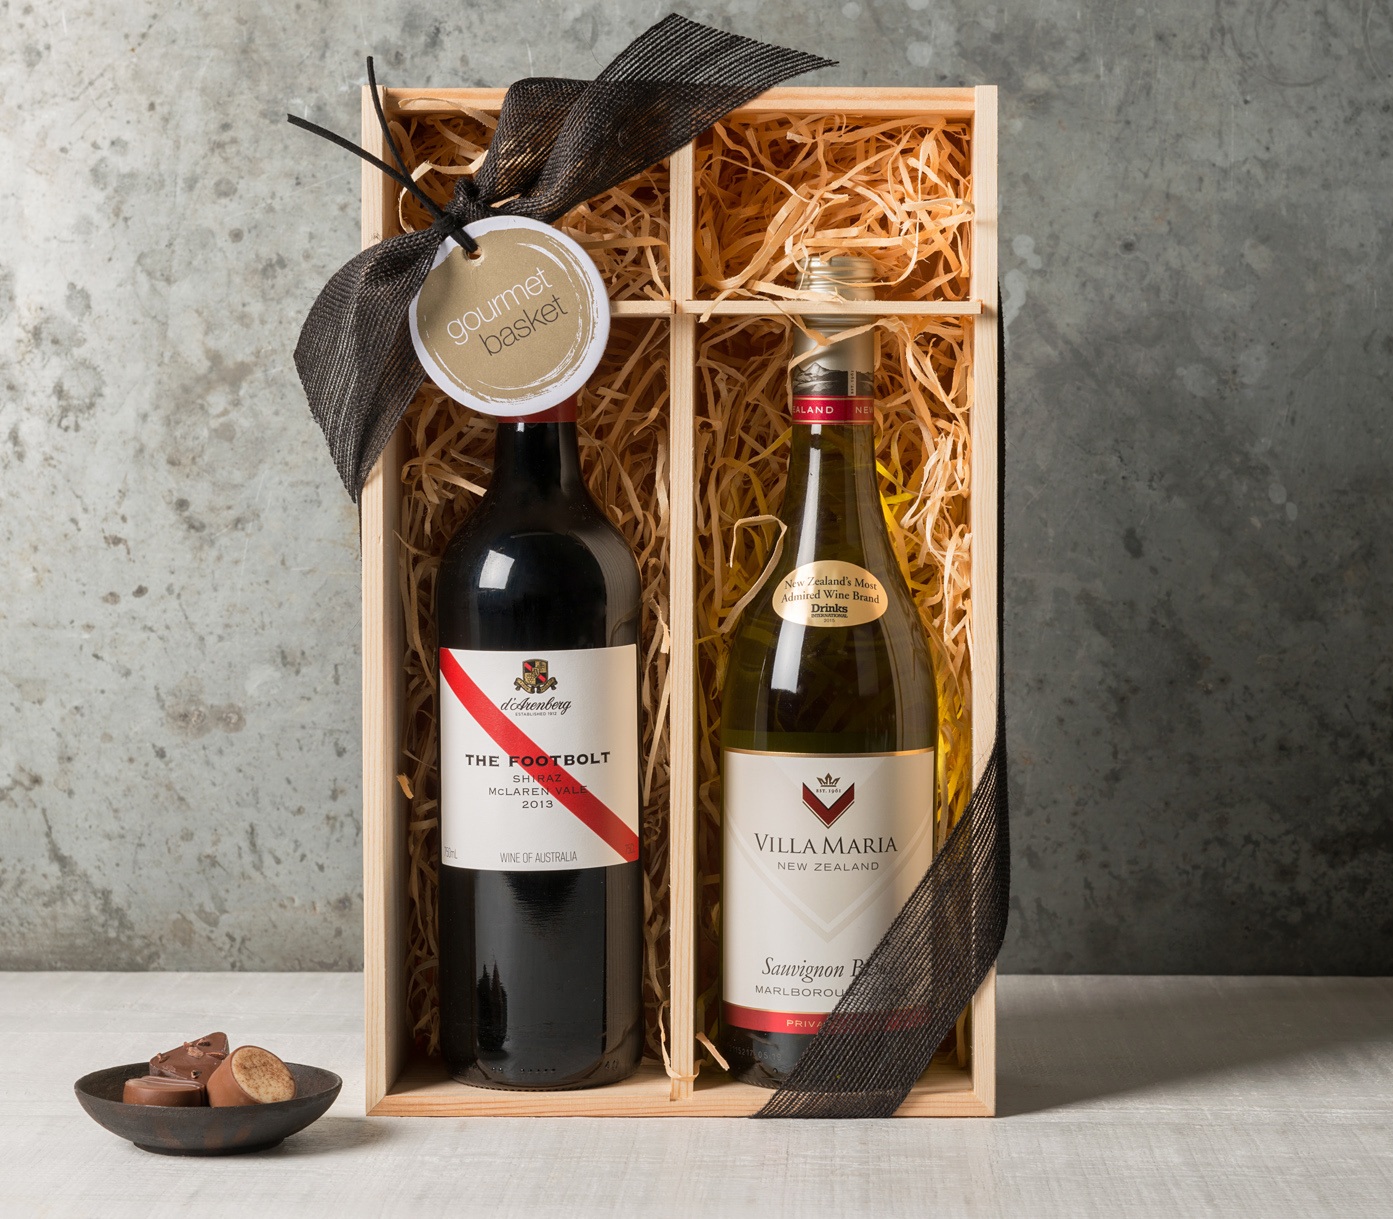 Wine gift set including red and white bottle packaged in a beautiful wooden box